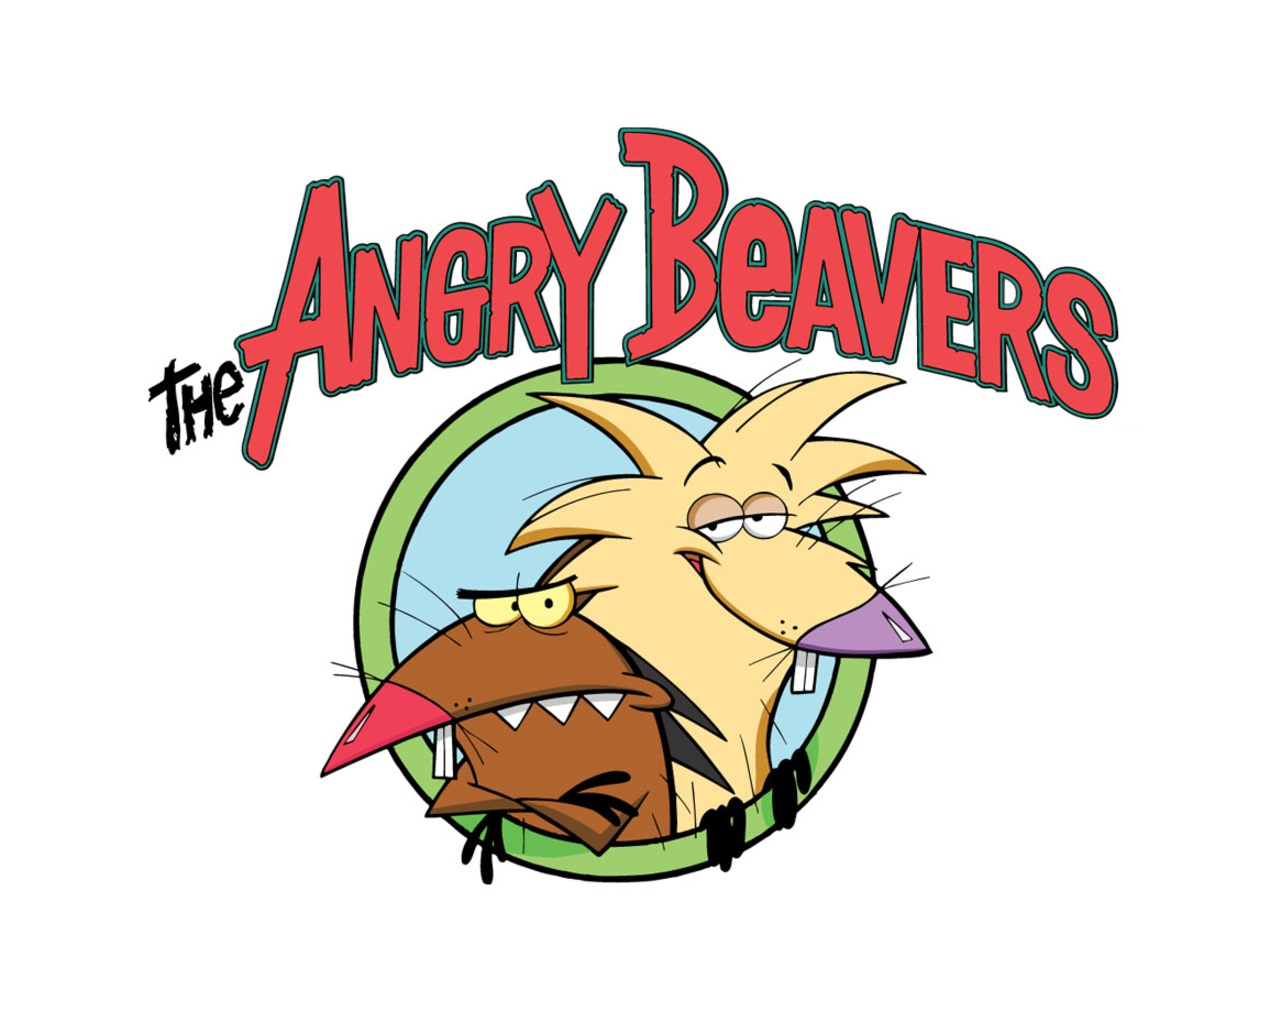 are viewing the The Angry Beavers wallpaper named The angry beavers 1280x1024